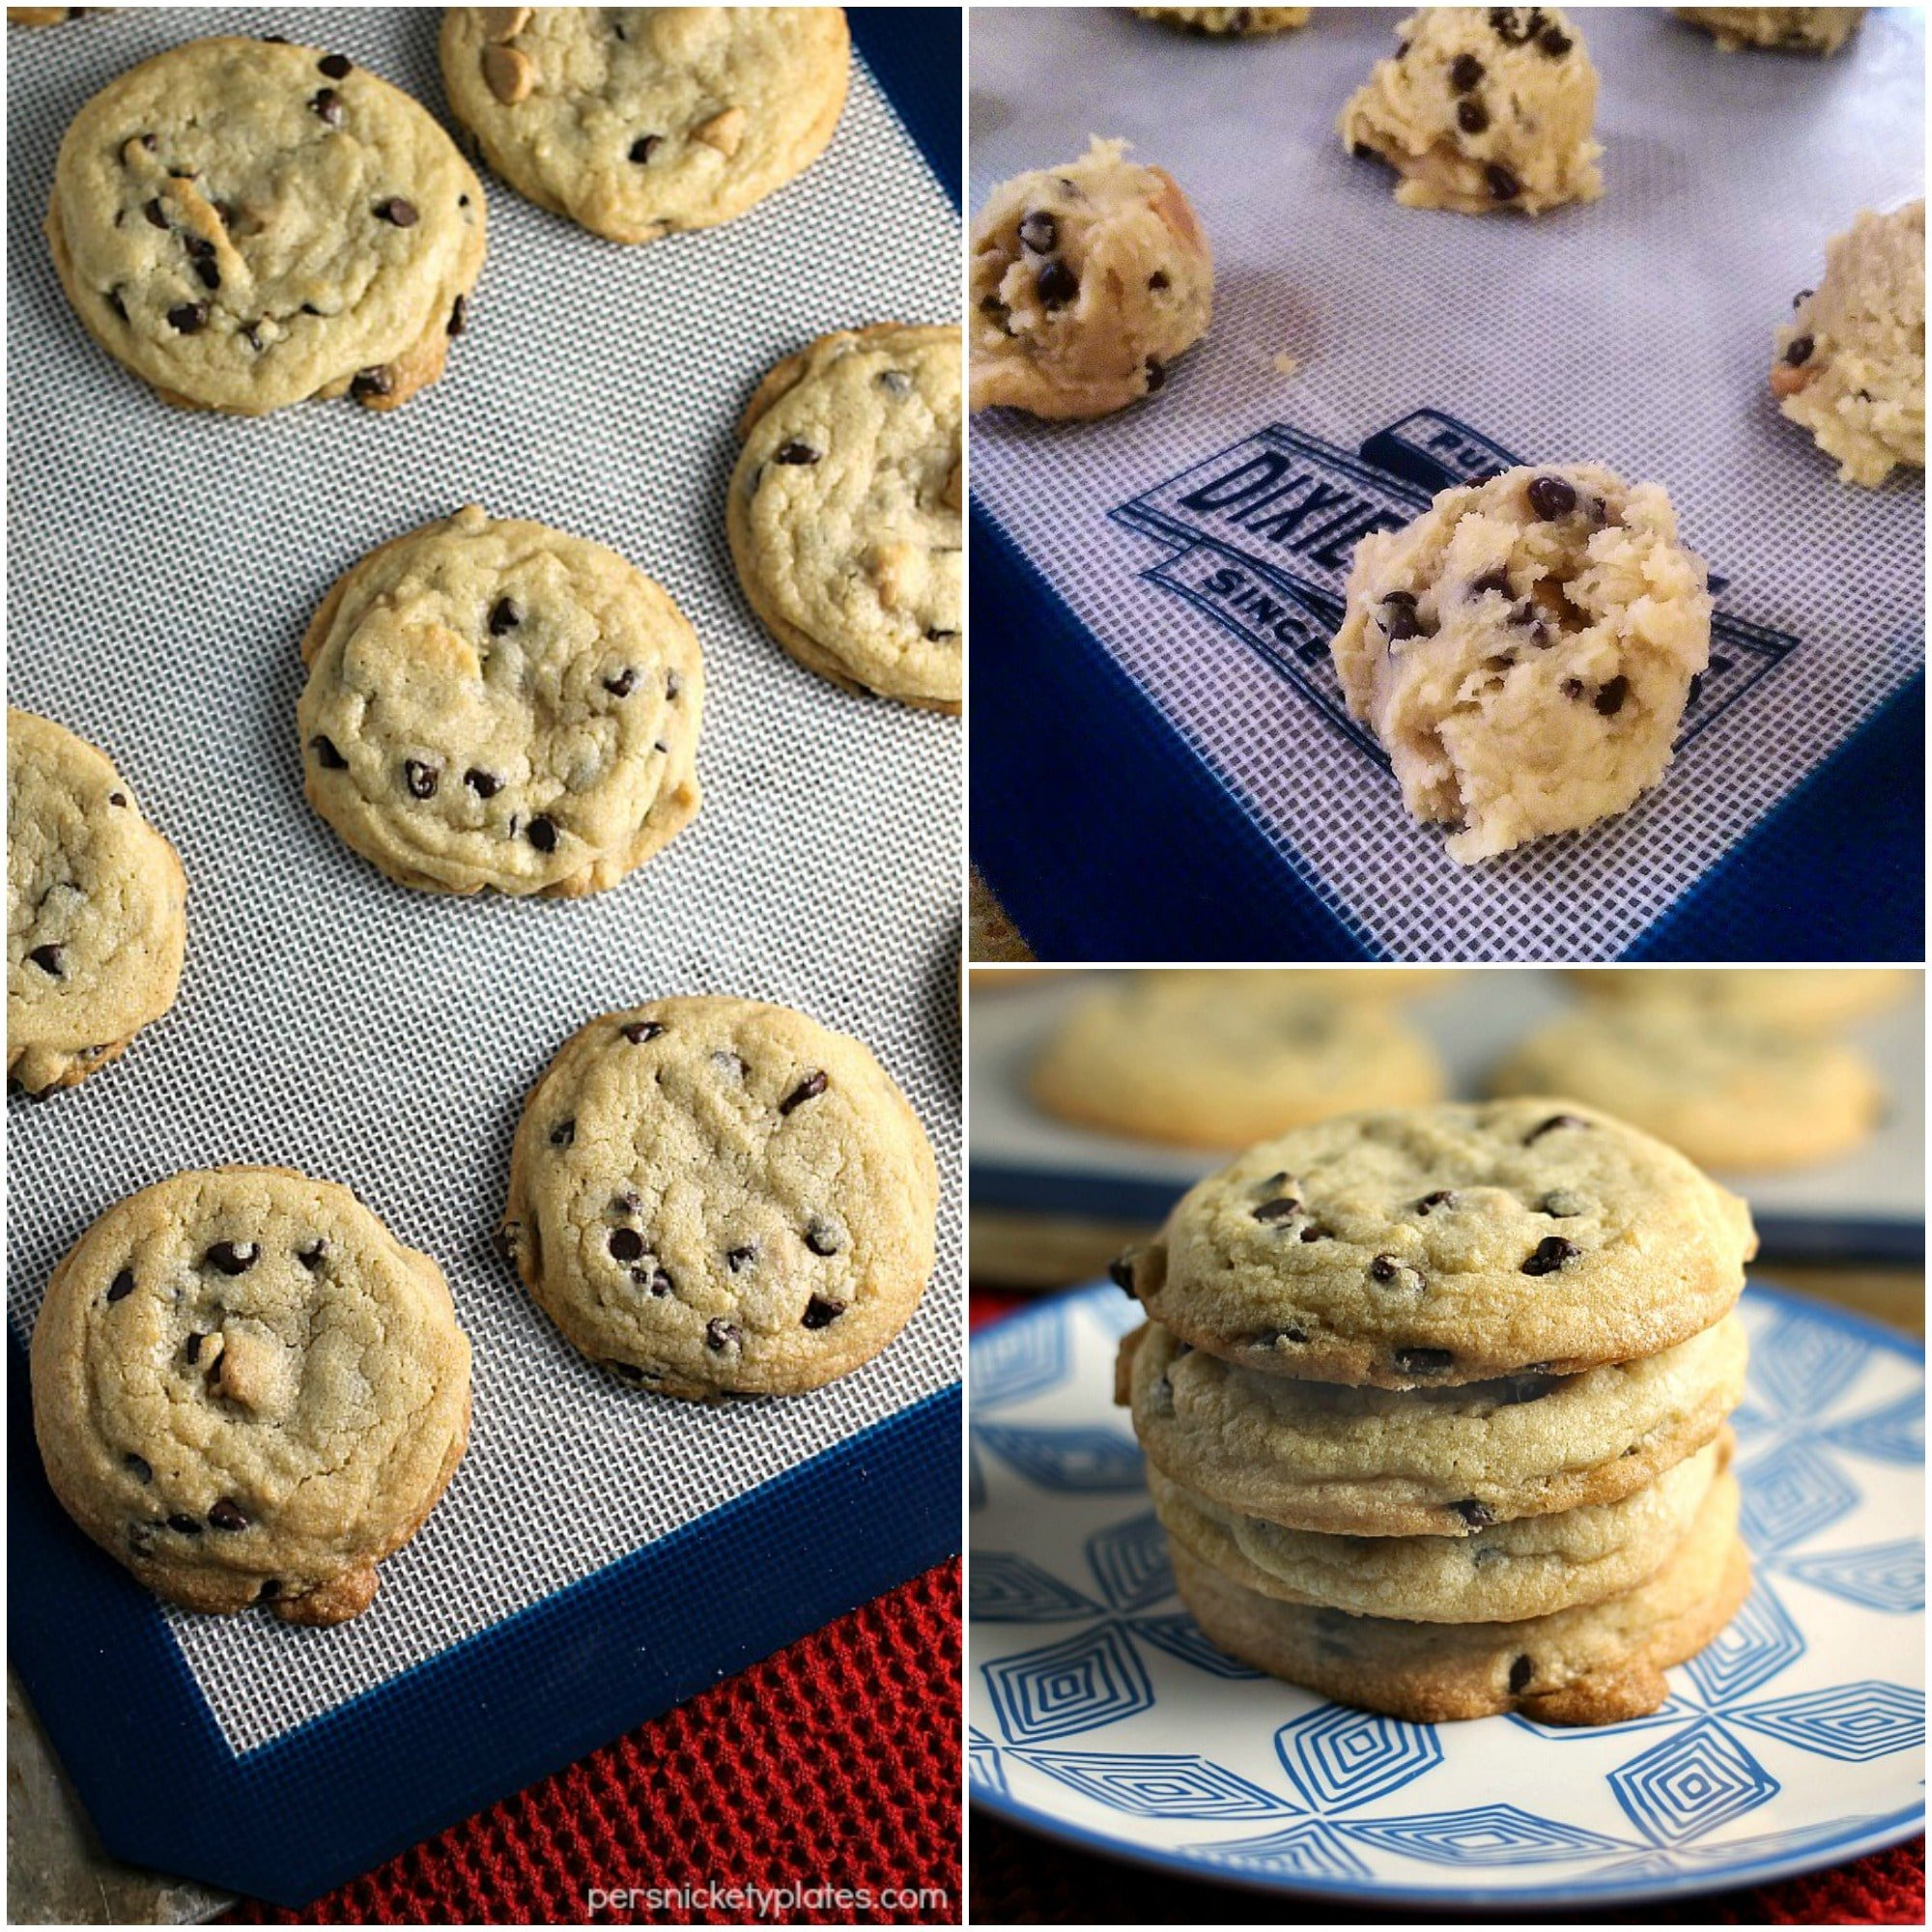 Soft Baked Peanut Butter & Chocolate Chip Cookies » Persnickety Plates